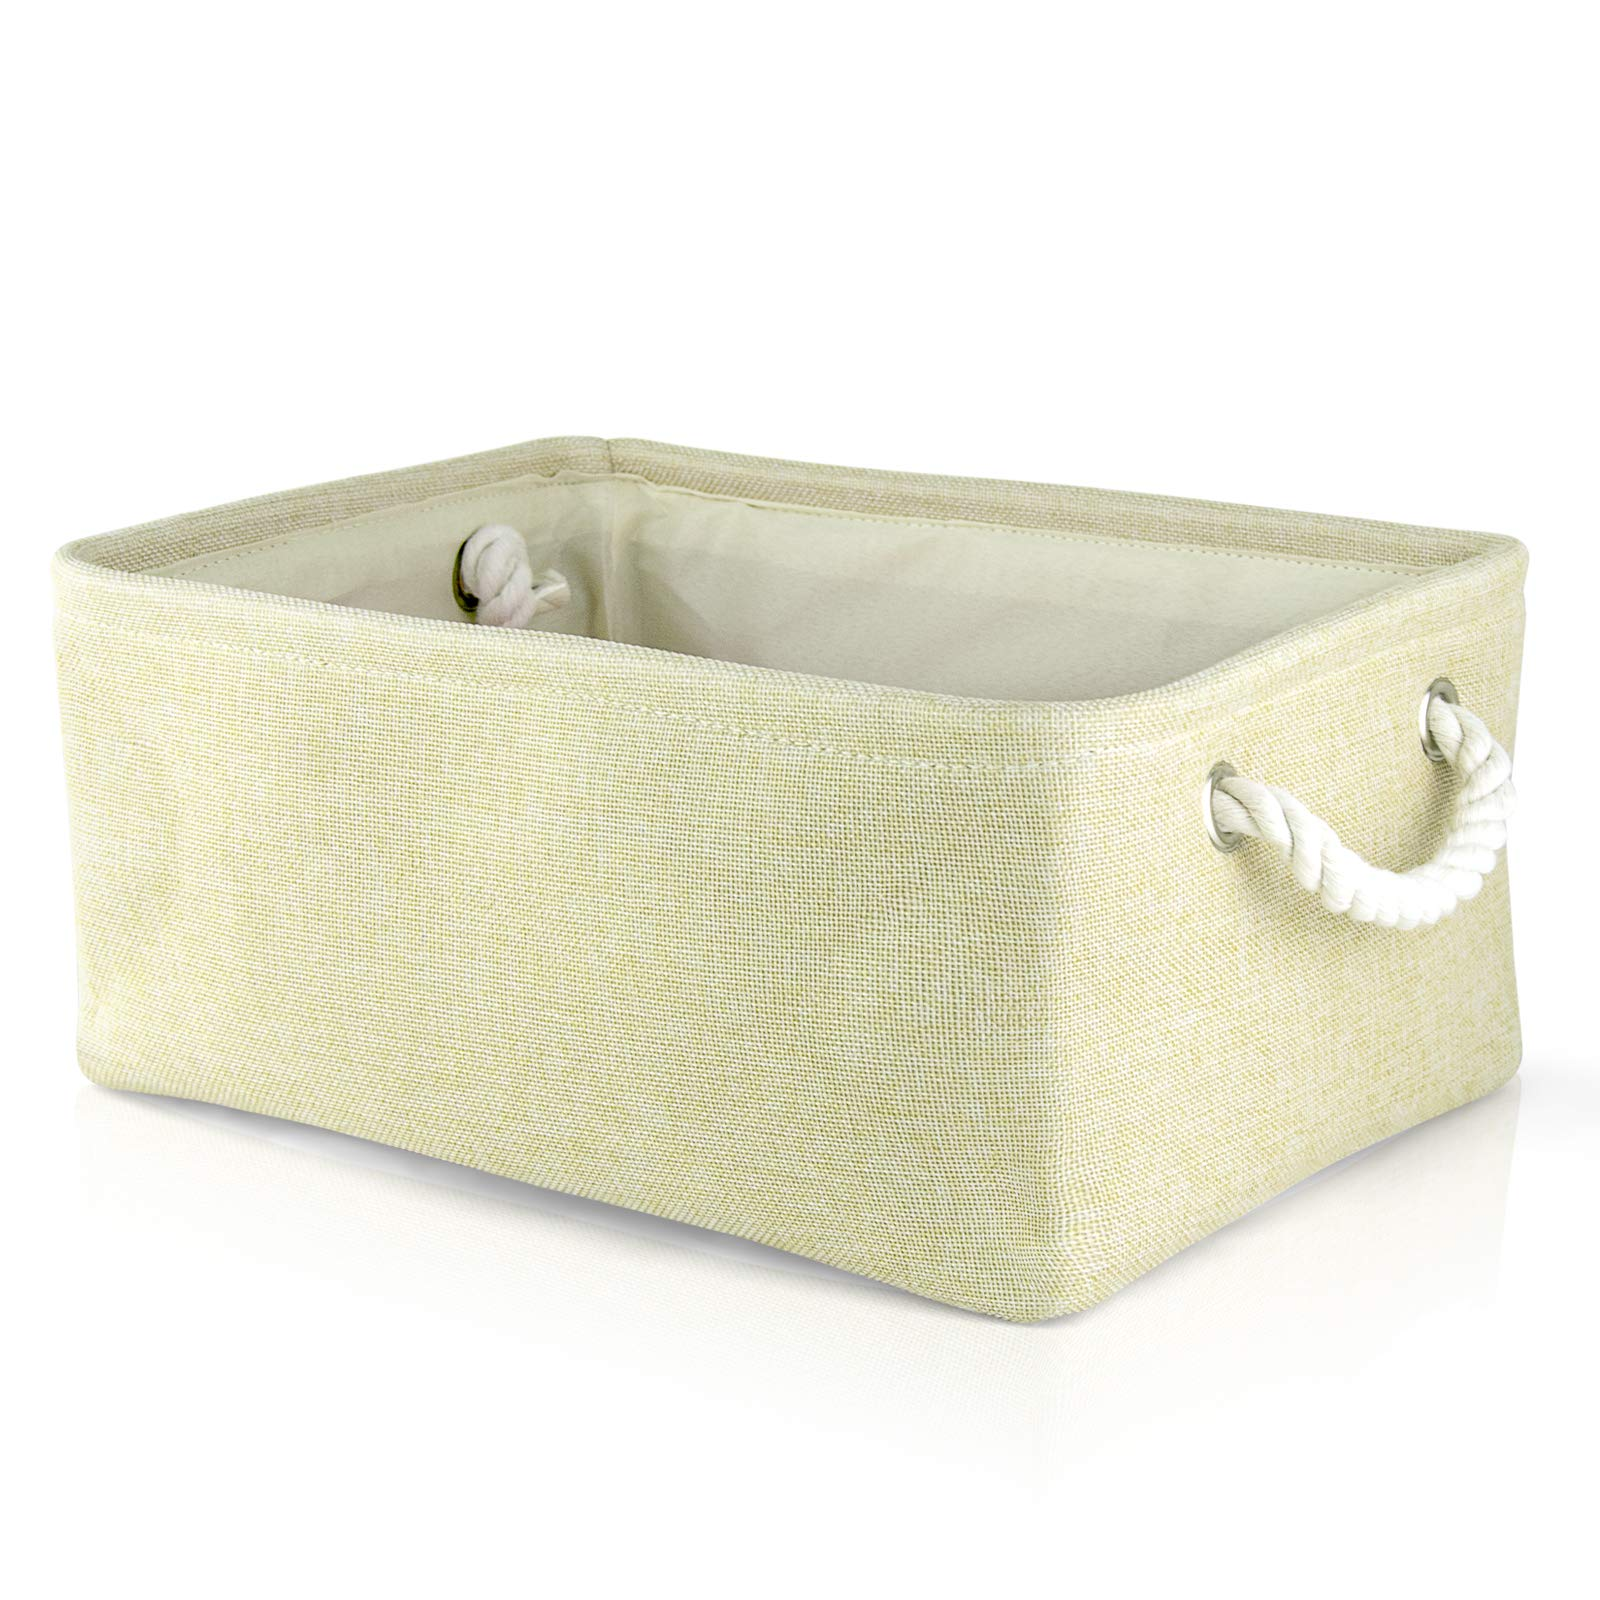 "iLoft Burlap Storage Basket with Rope Handles, Collapsible Linen Fabric Storage Basket, Storage Bins for Toys, 14.1"" X 10.2"" X 6.3"", Beige"